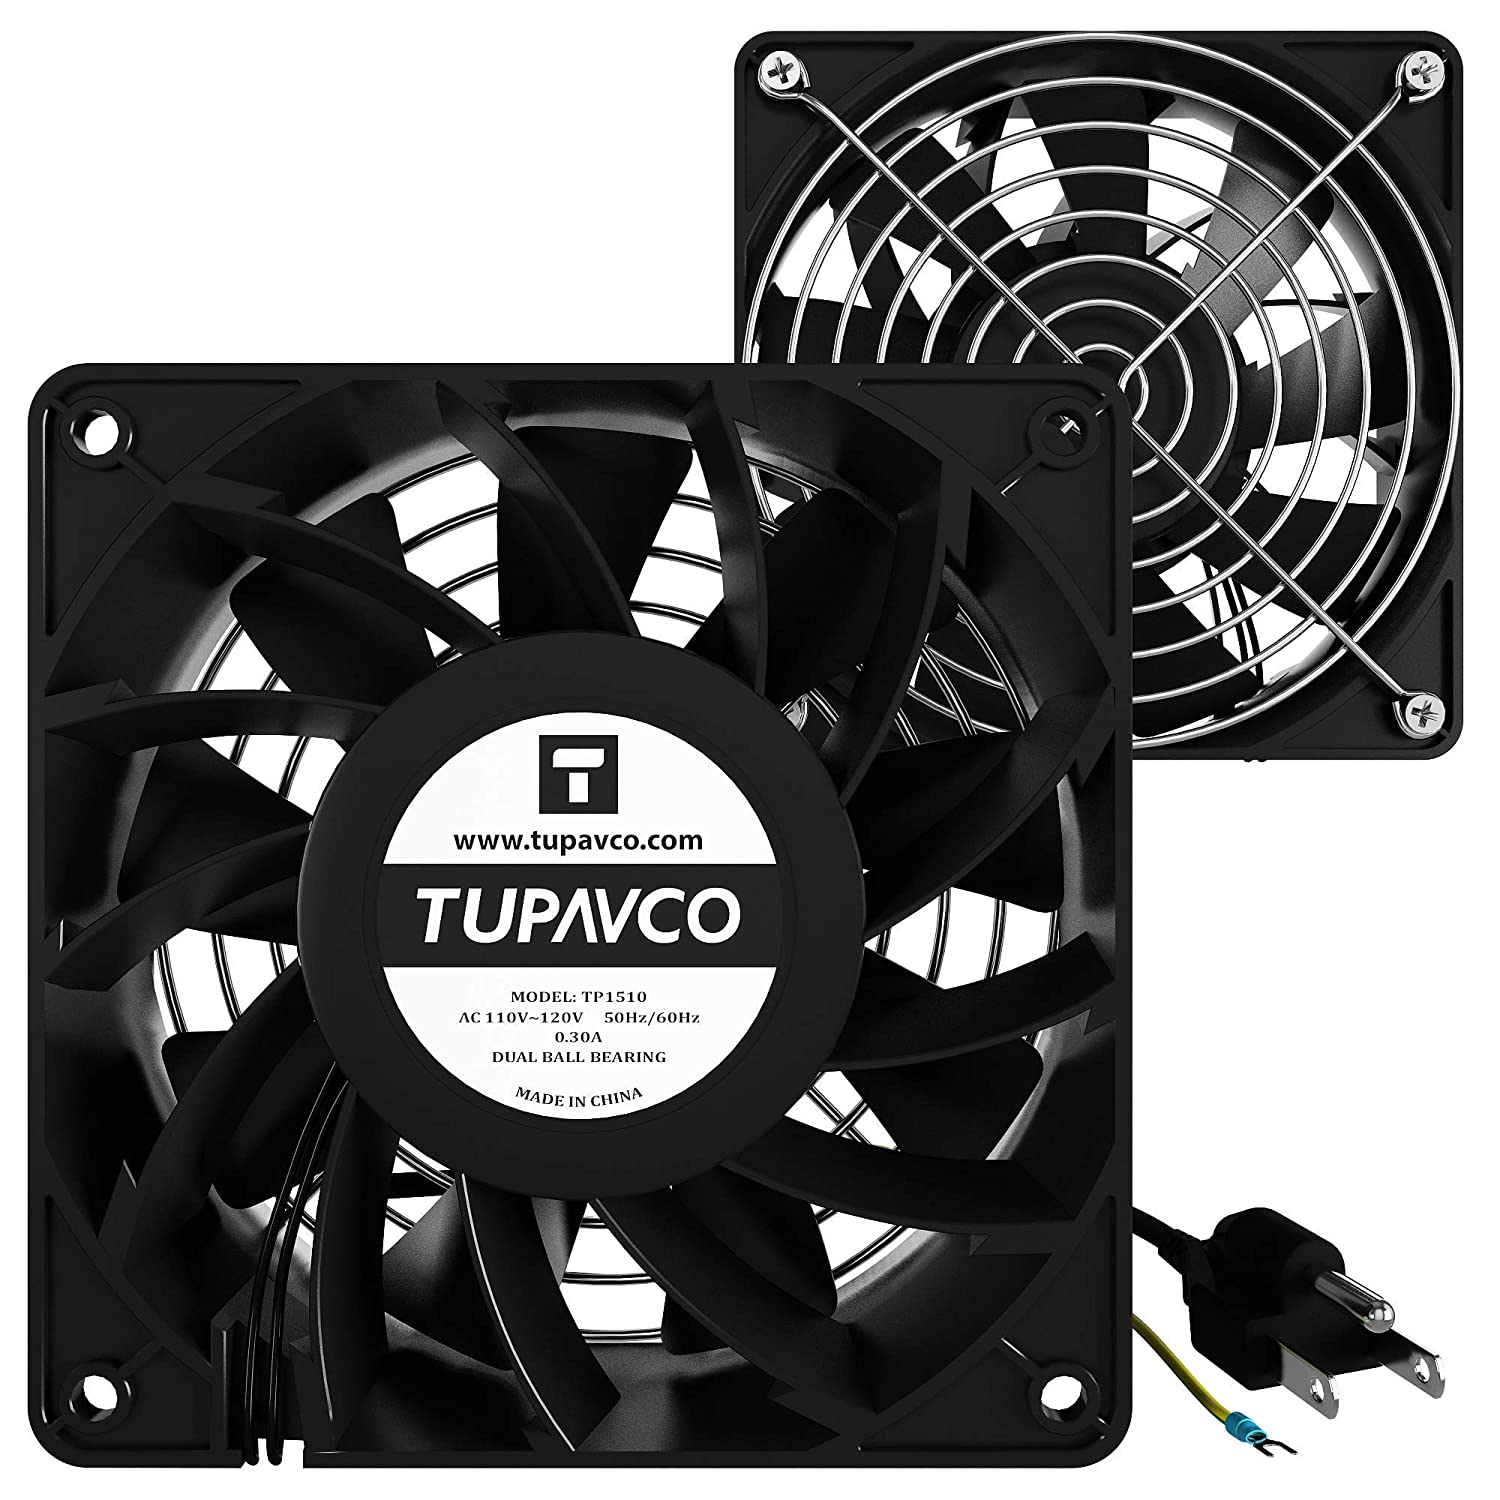 Network Cabinet Fan (Dual 2pc Kit) Server Rack Cooling (Rackmount Muffin Fans Pair 120mm 4in) 110V Cable (Extra Strong) Dual Ball for Side or Top Mount (Computer Equipment Ventilation) Tupavco TP1510